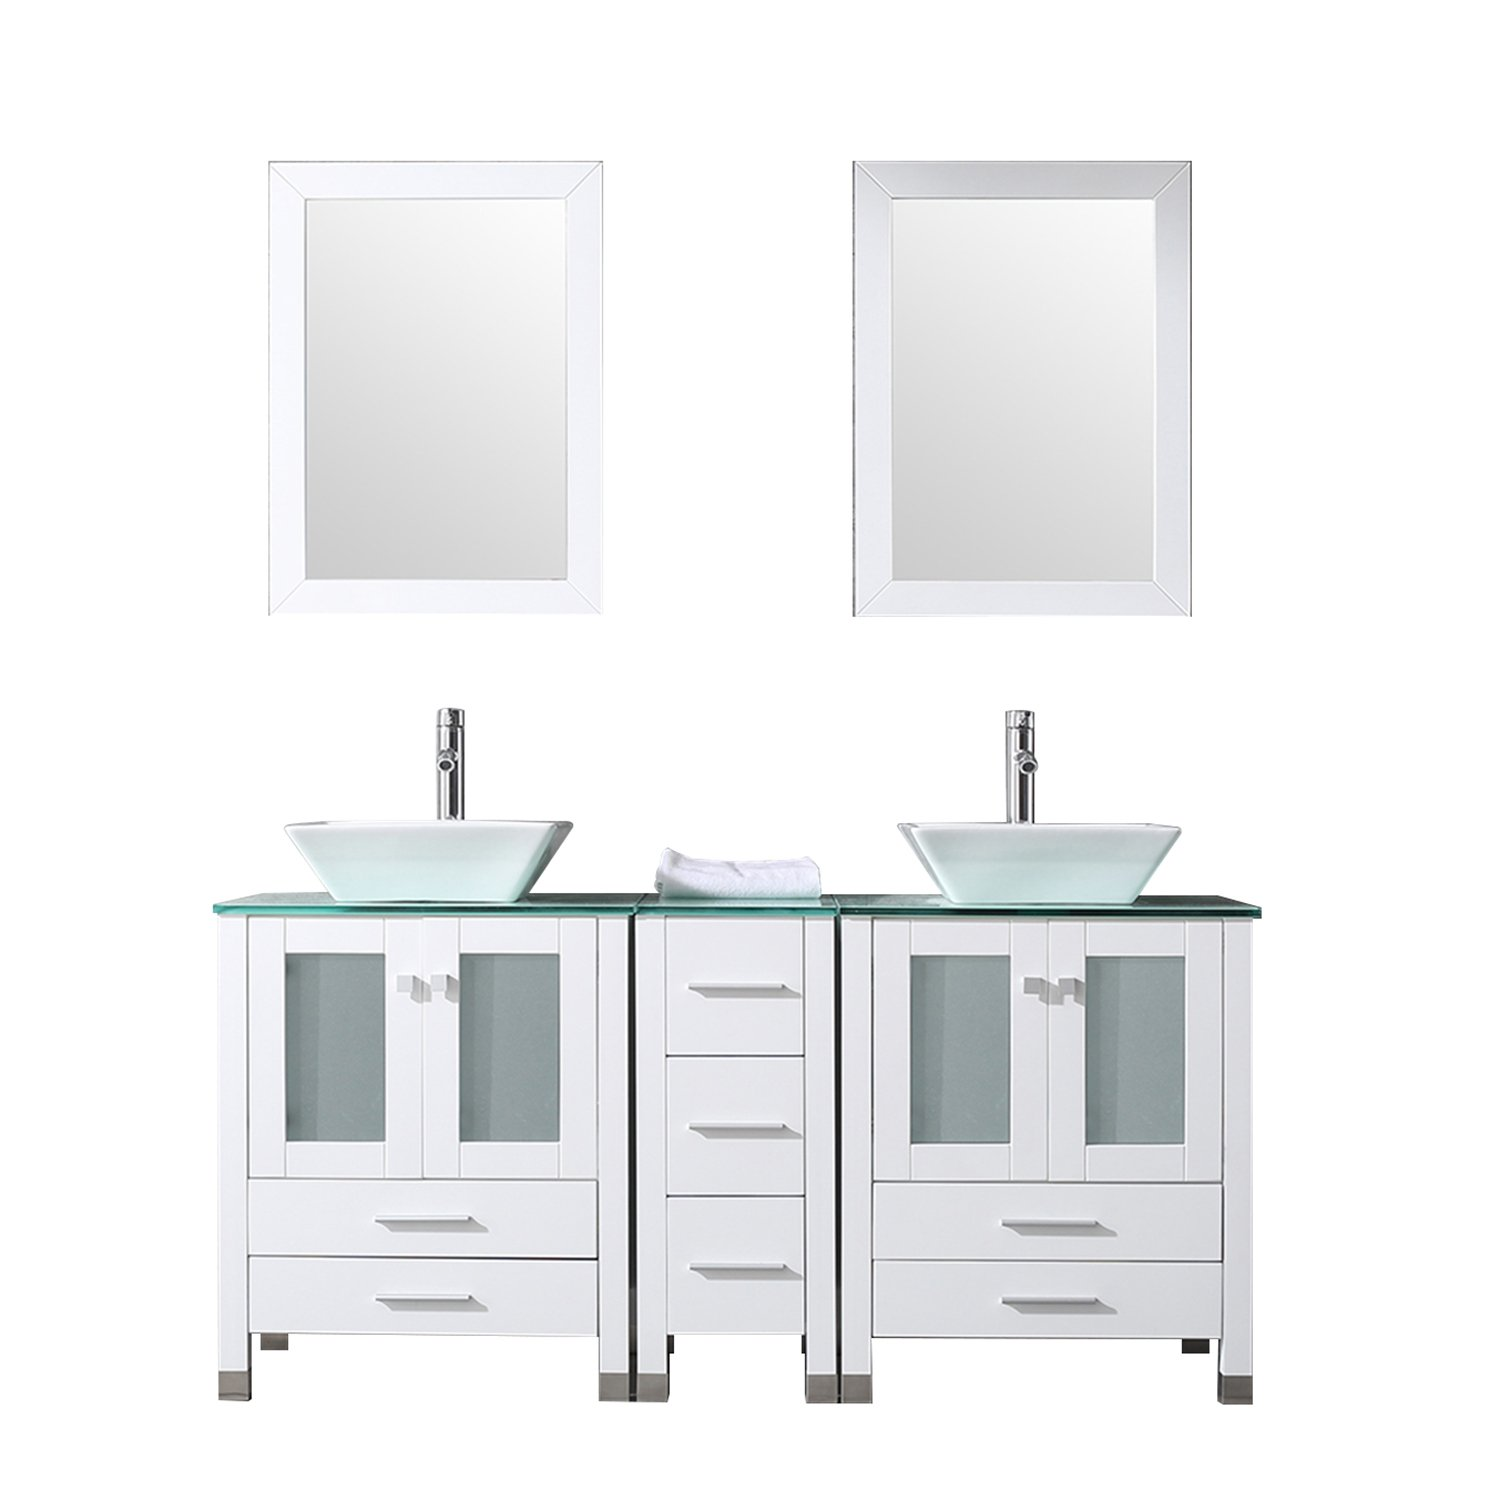 WONLINE 60 White Double Wood Bathroom Vanity Cabinet and Round Ceramic Sink w Mirror Combo Wash Basin with Faucet Square